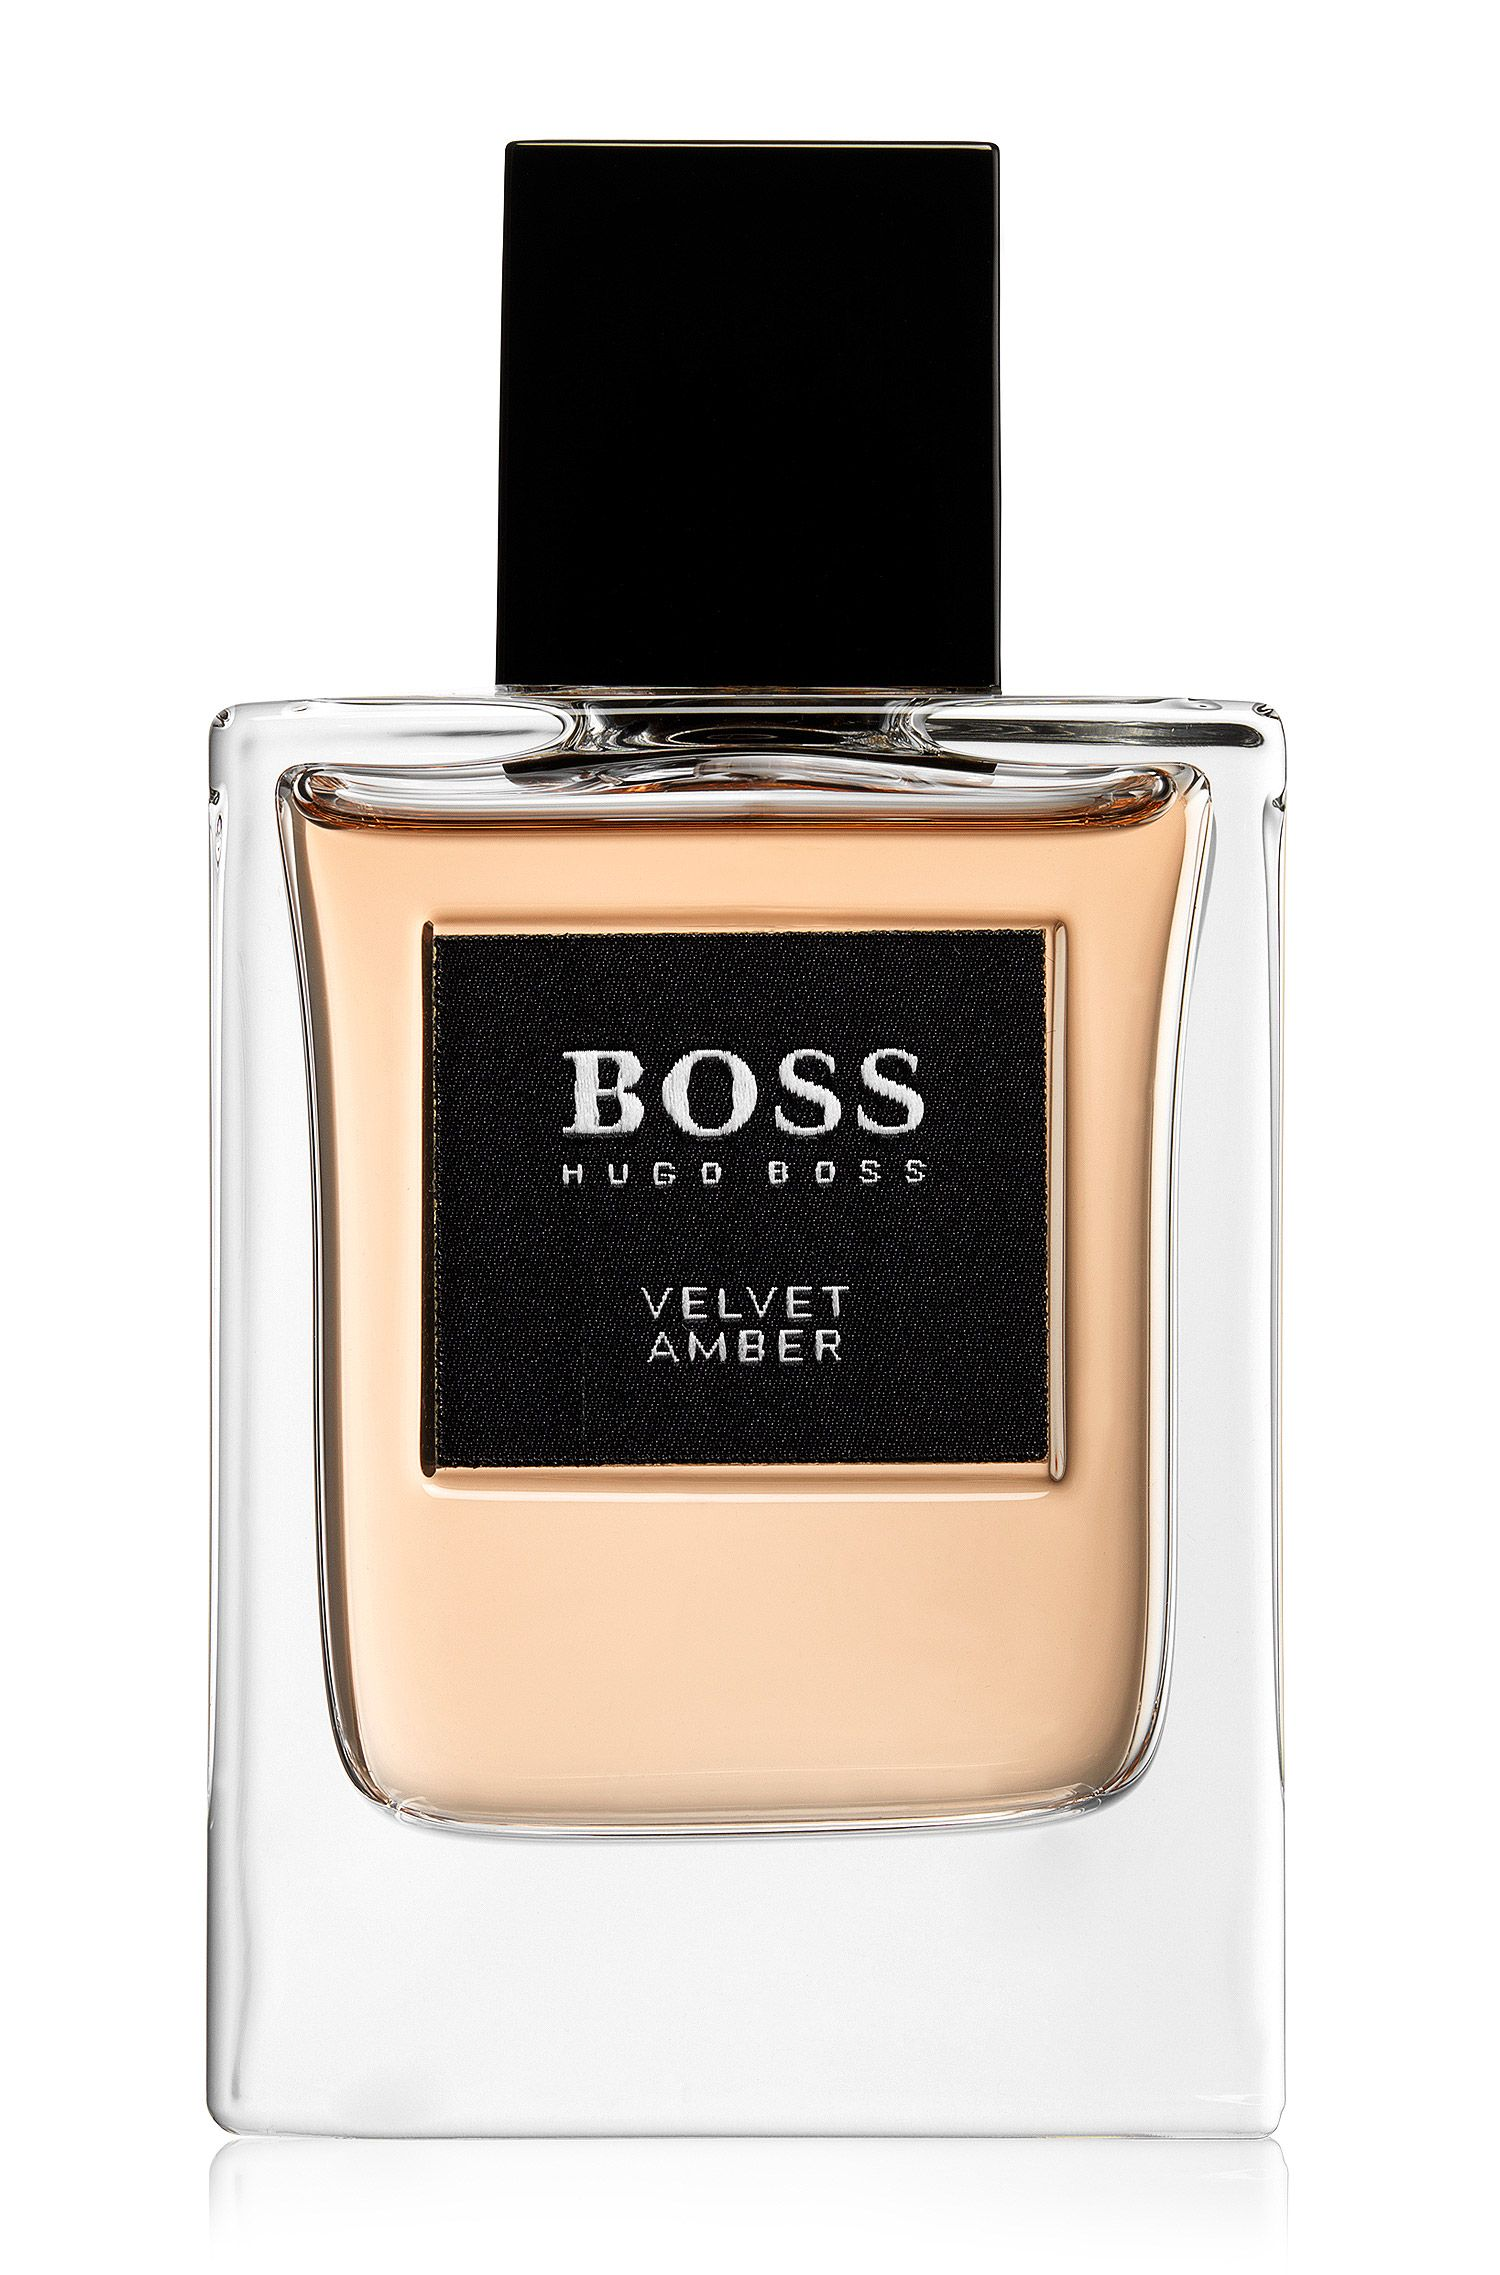 BOSS The Collection - Velvet Amber Eau de Parfum